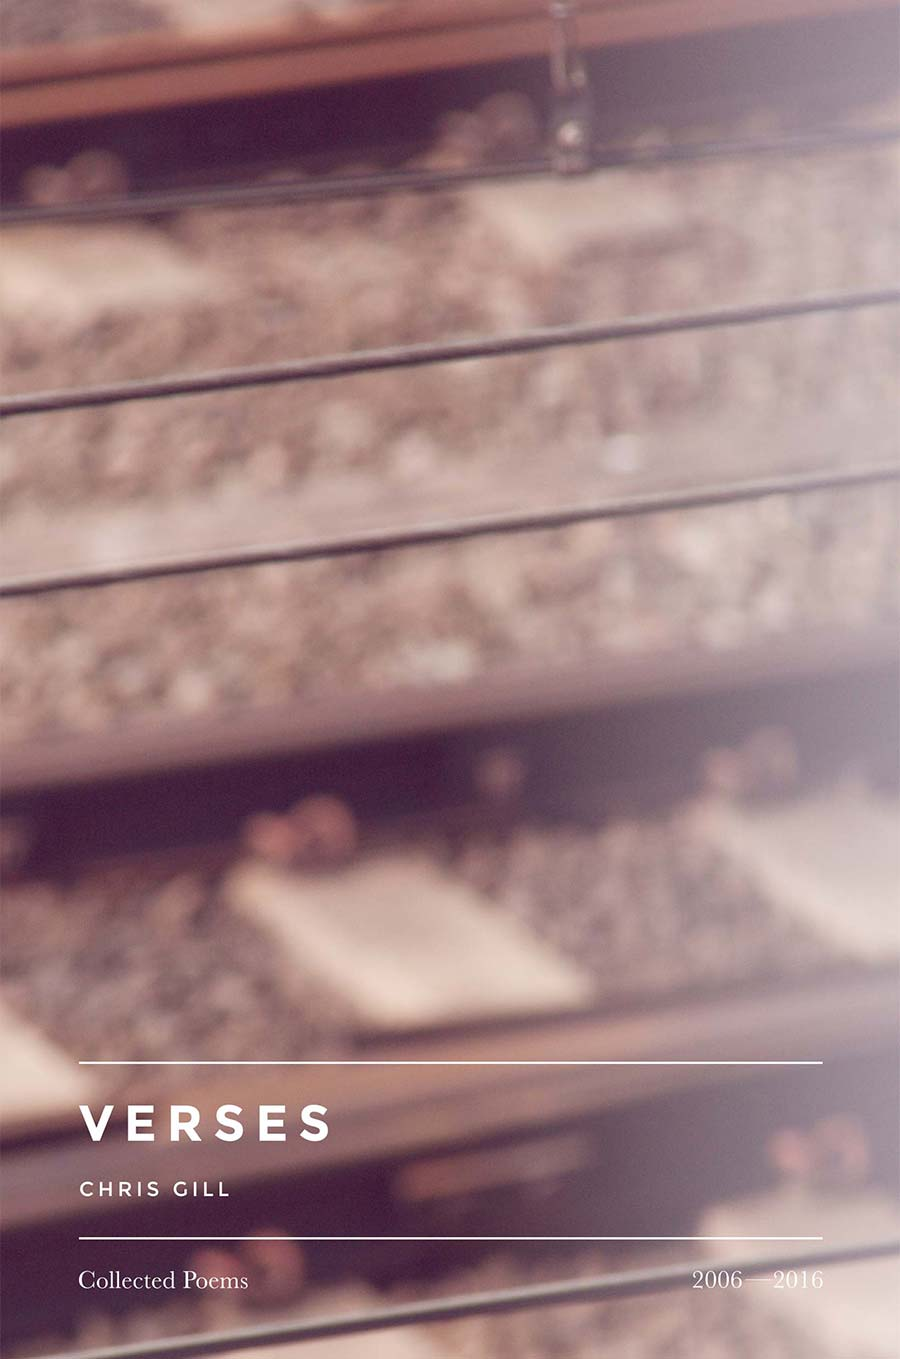 Verses by Chis Gill